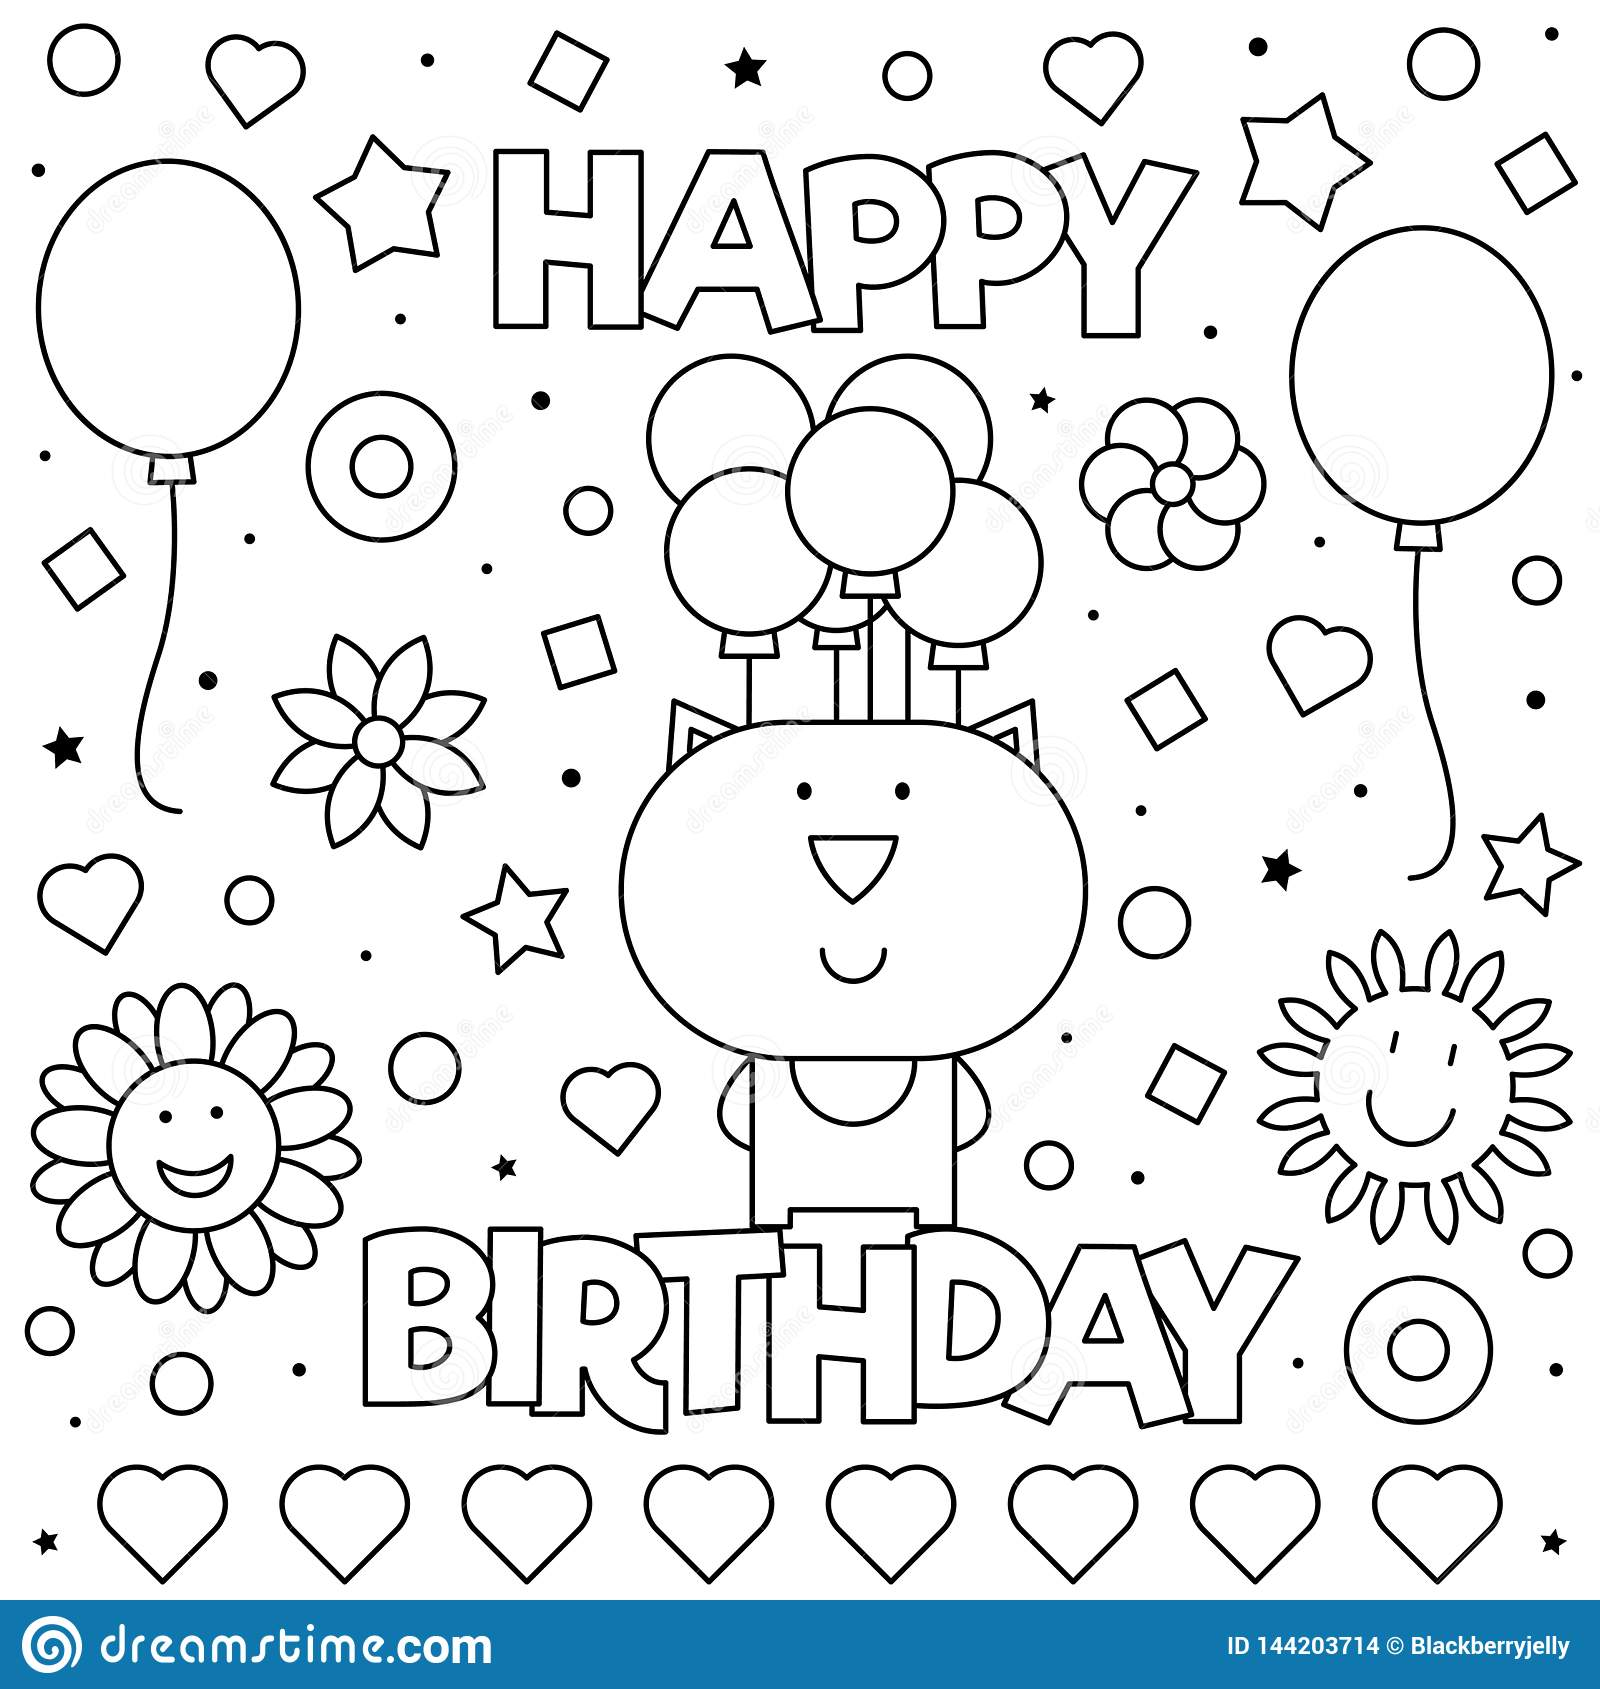 51 Astonishing Free Birthday Coloring Pages – azspring | 1689x1600